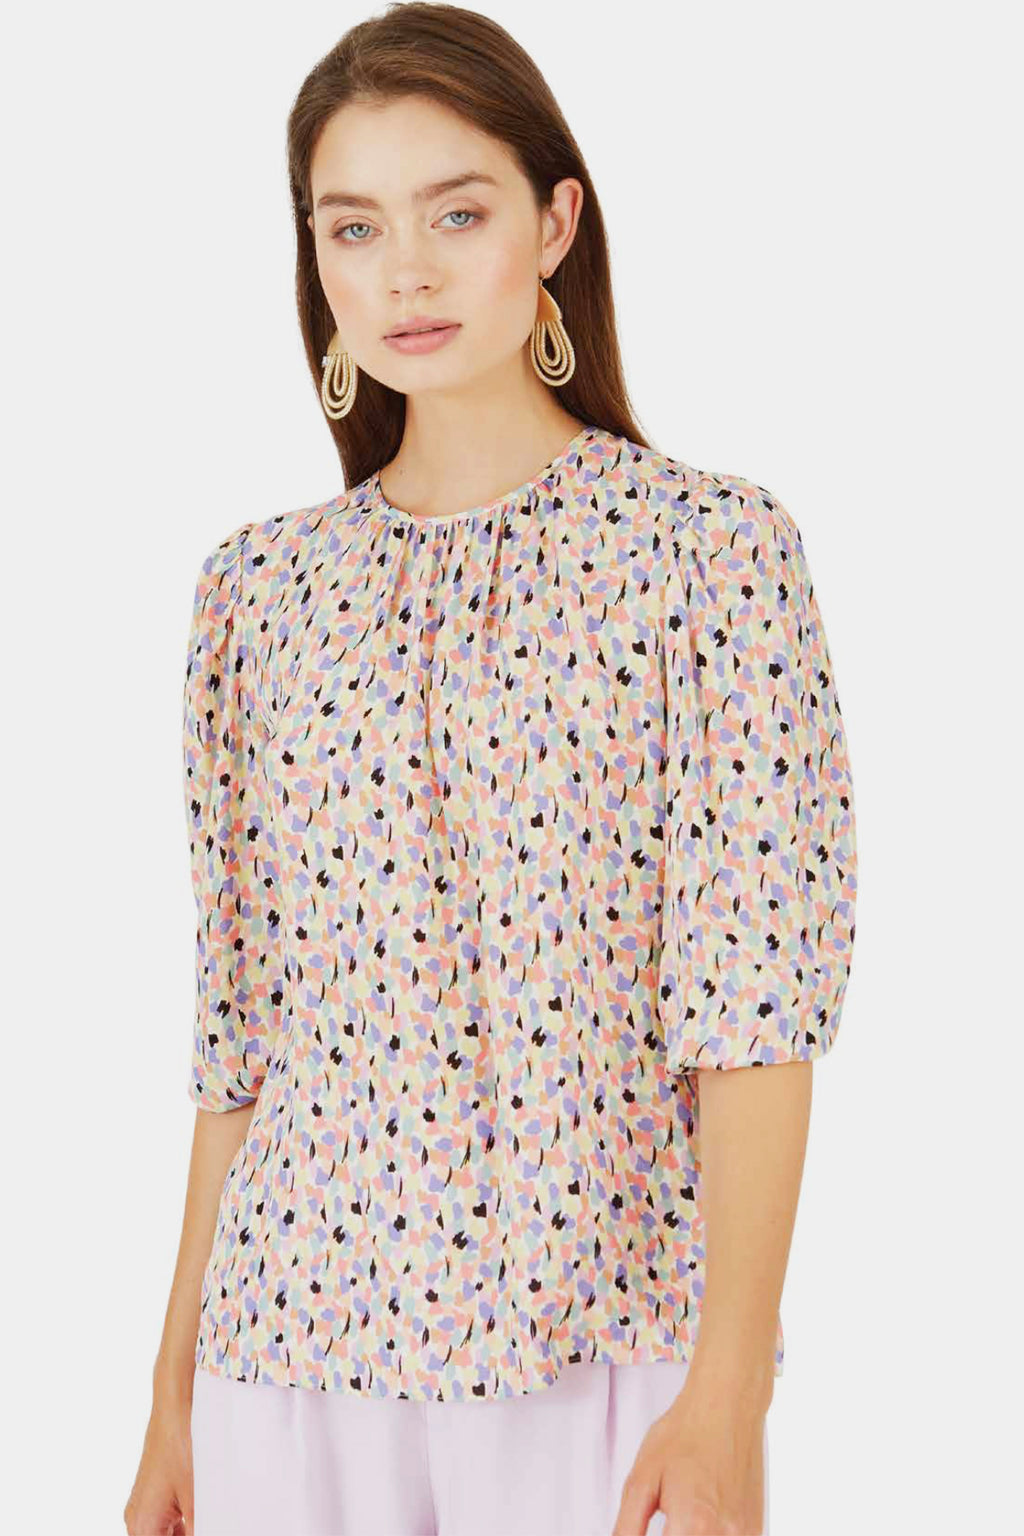 Caballero Kelly Top in Multi Print